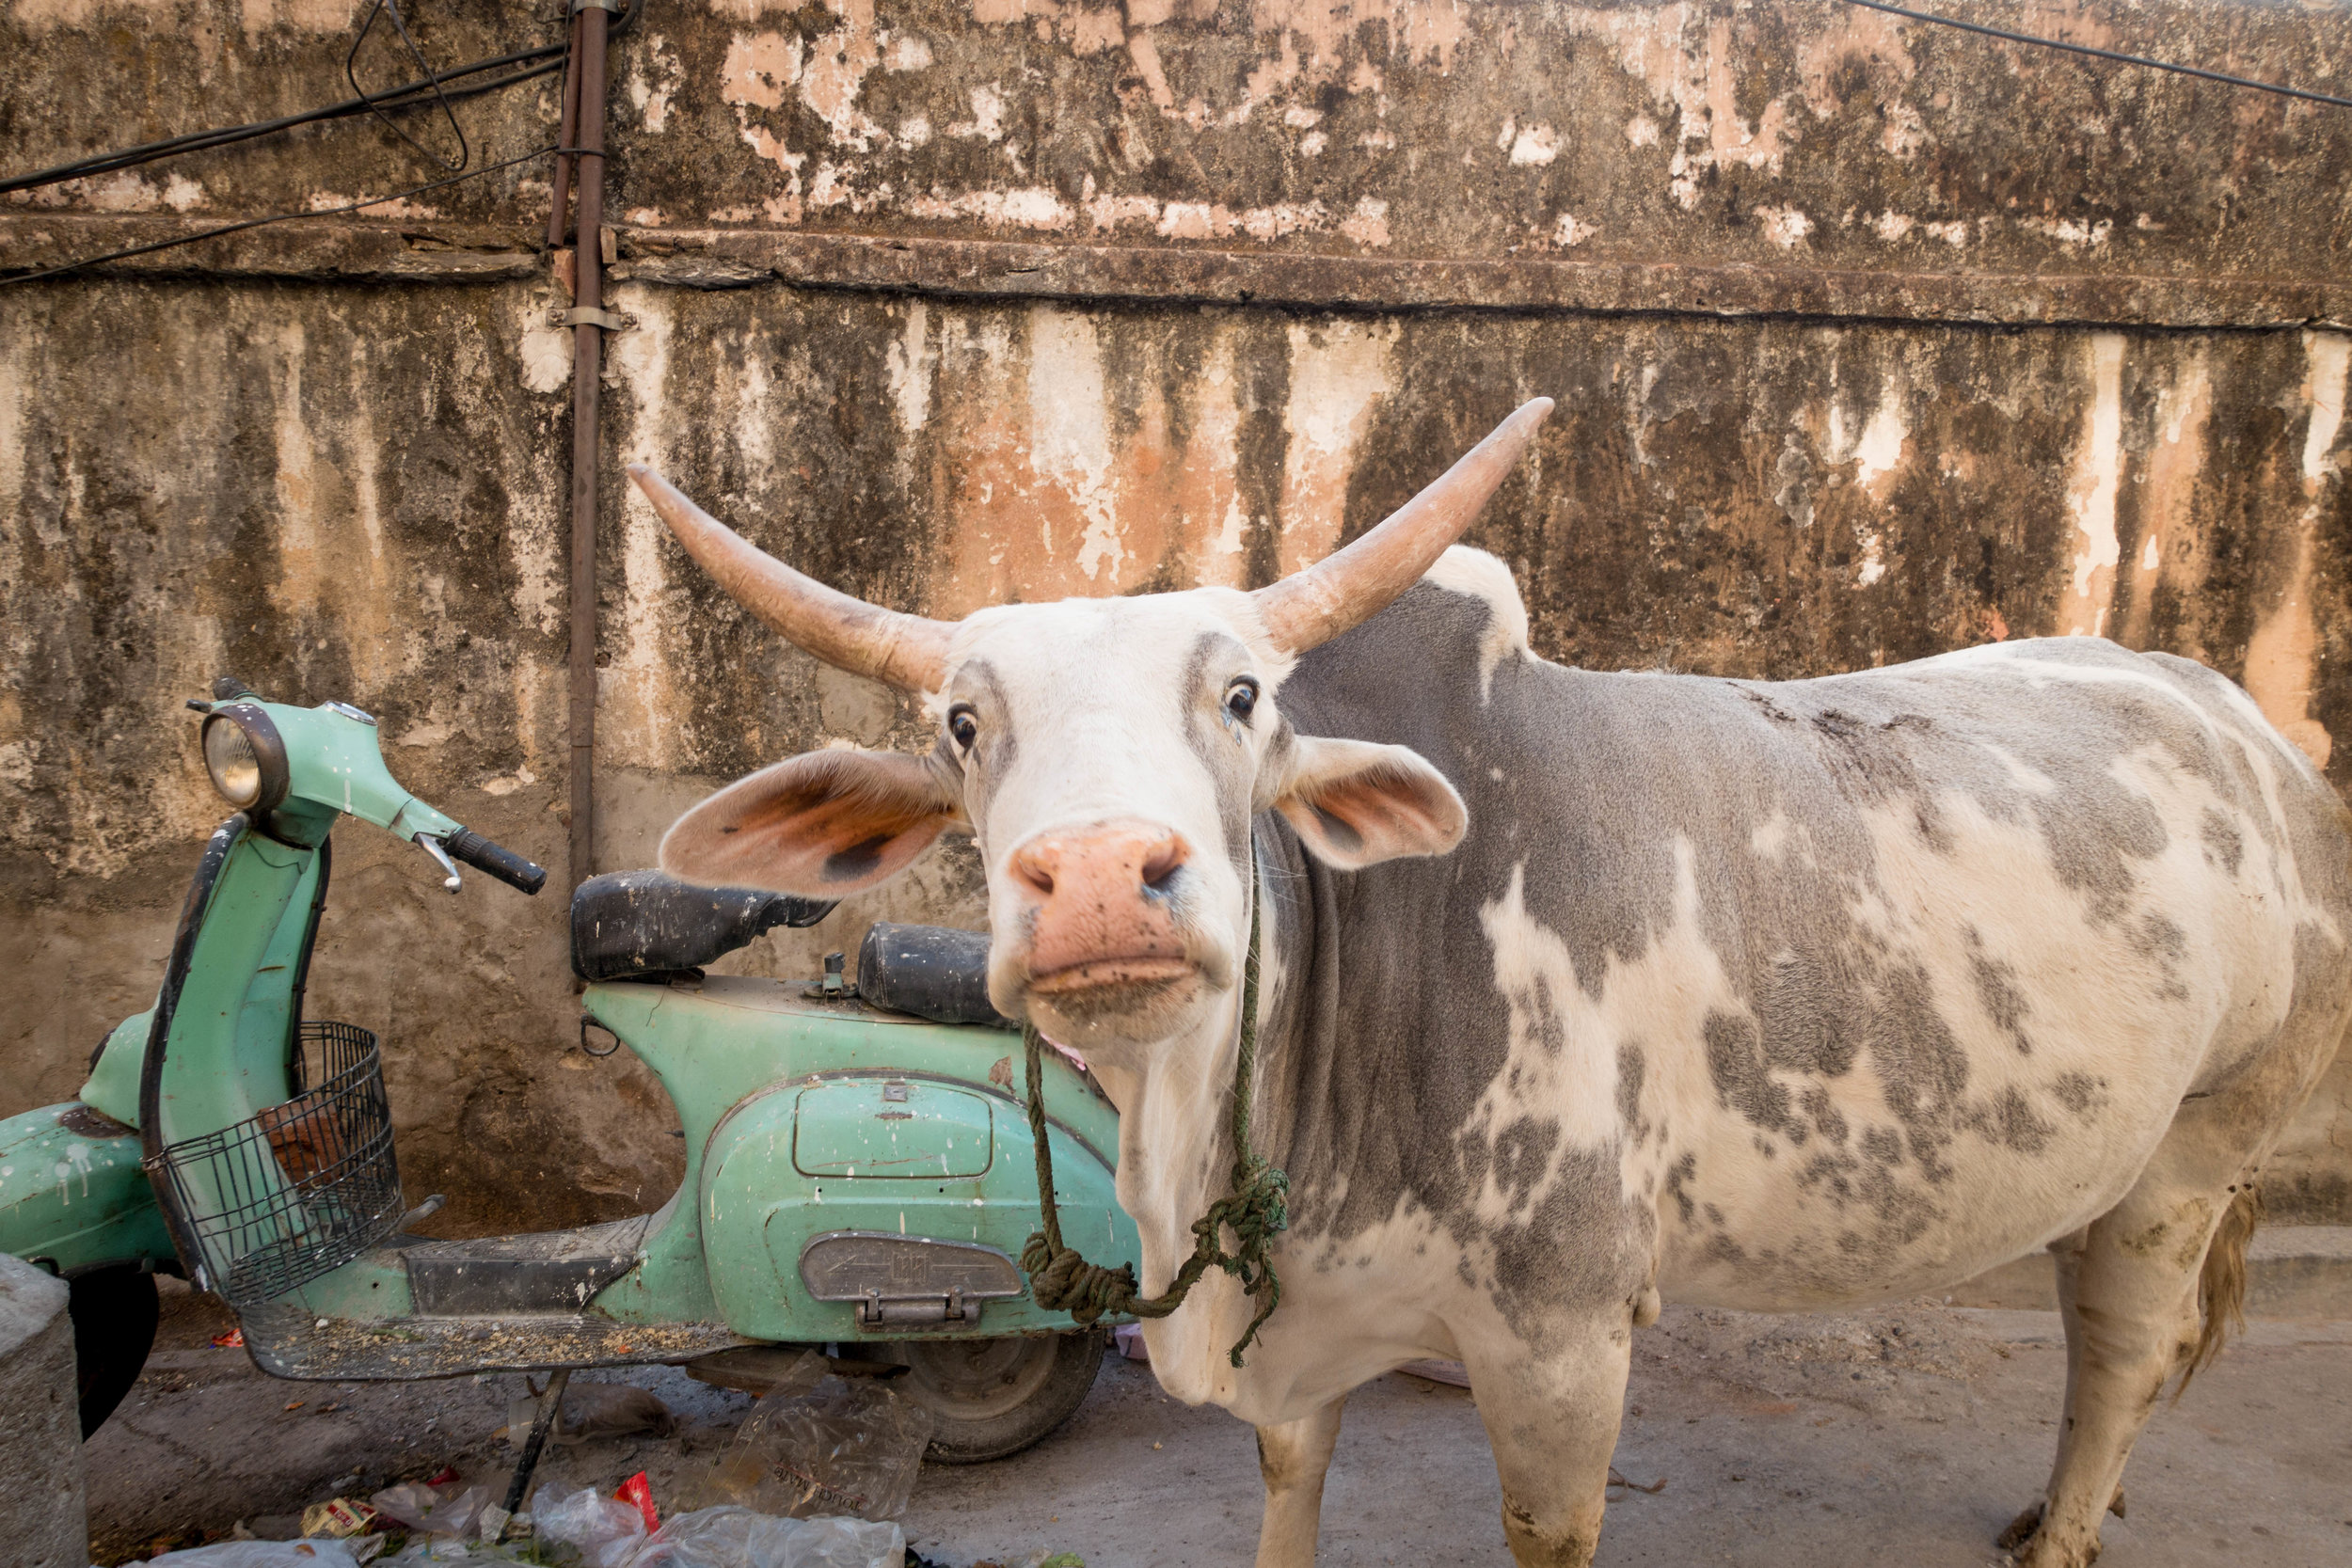 India, where cows are revered and over forty percent of the population eats a plant-based diet, is a vegetarian and vegan's paradise. Food is also amazingly good and incredibly inexpensive.